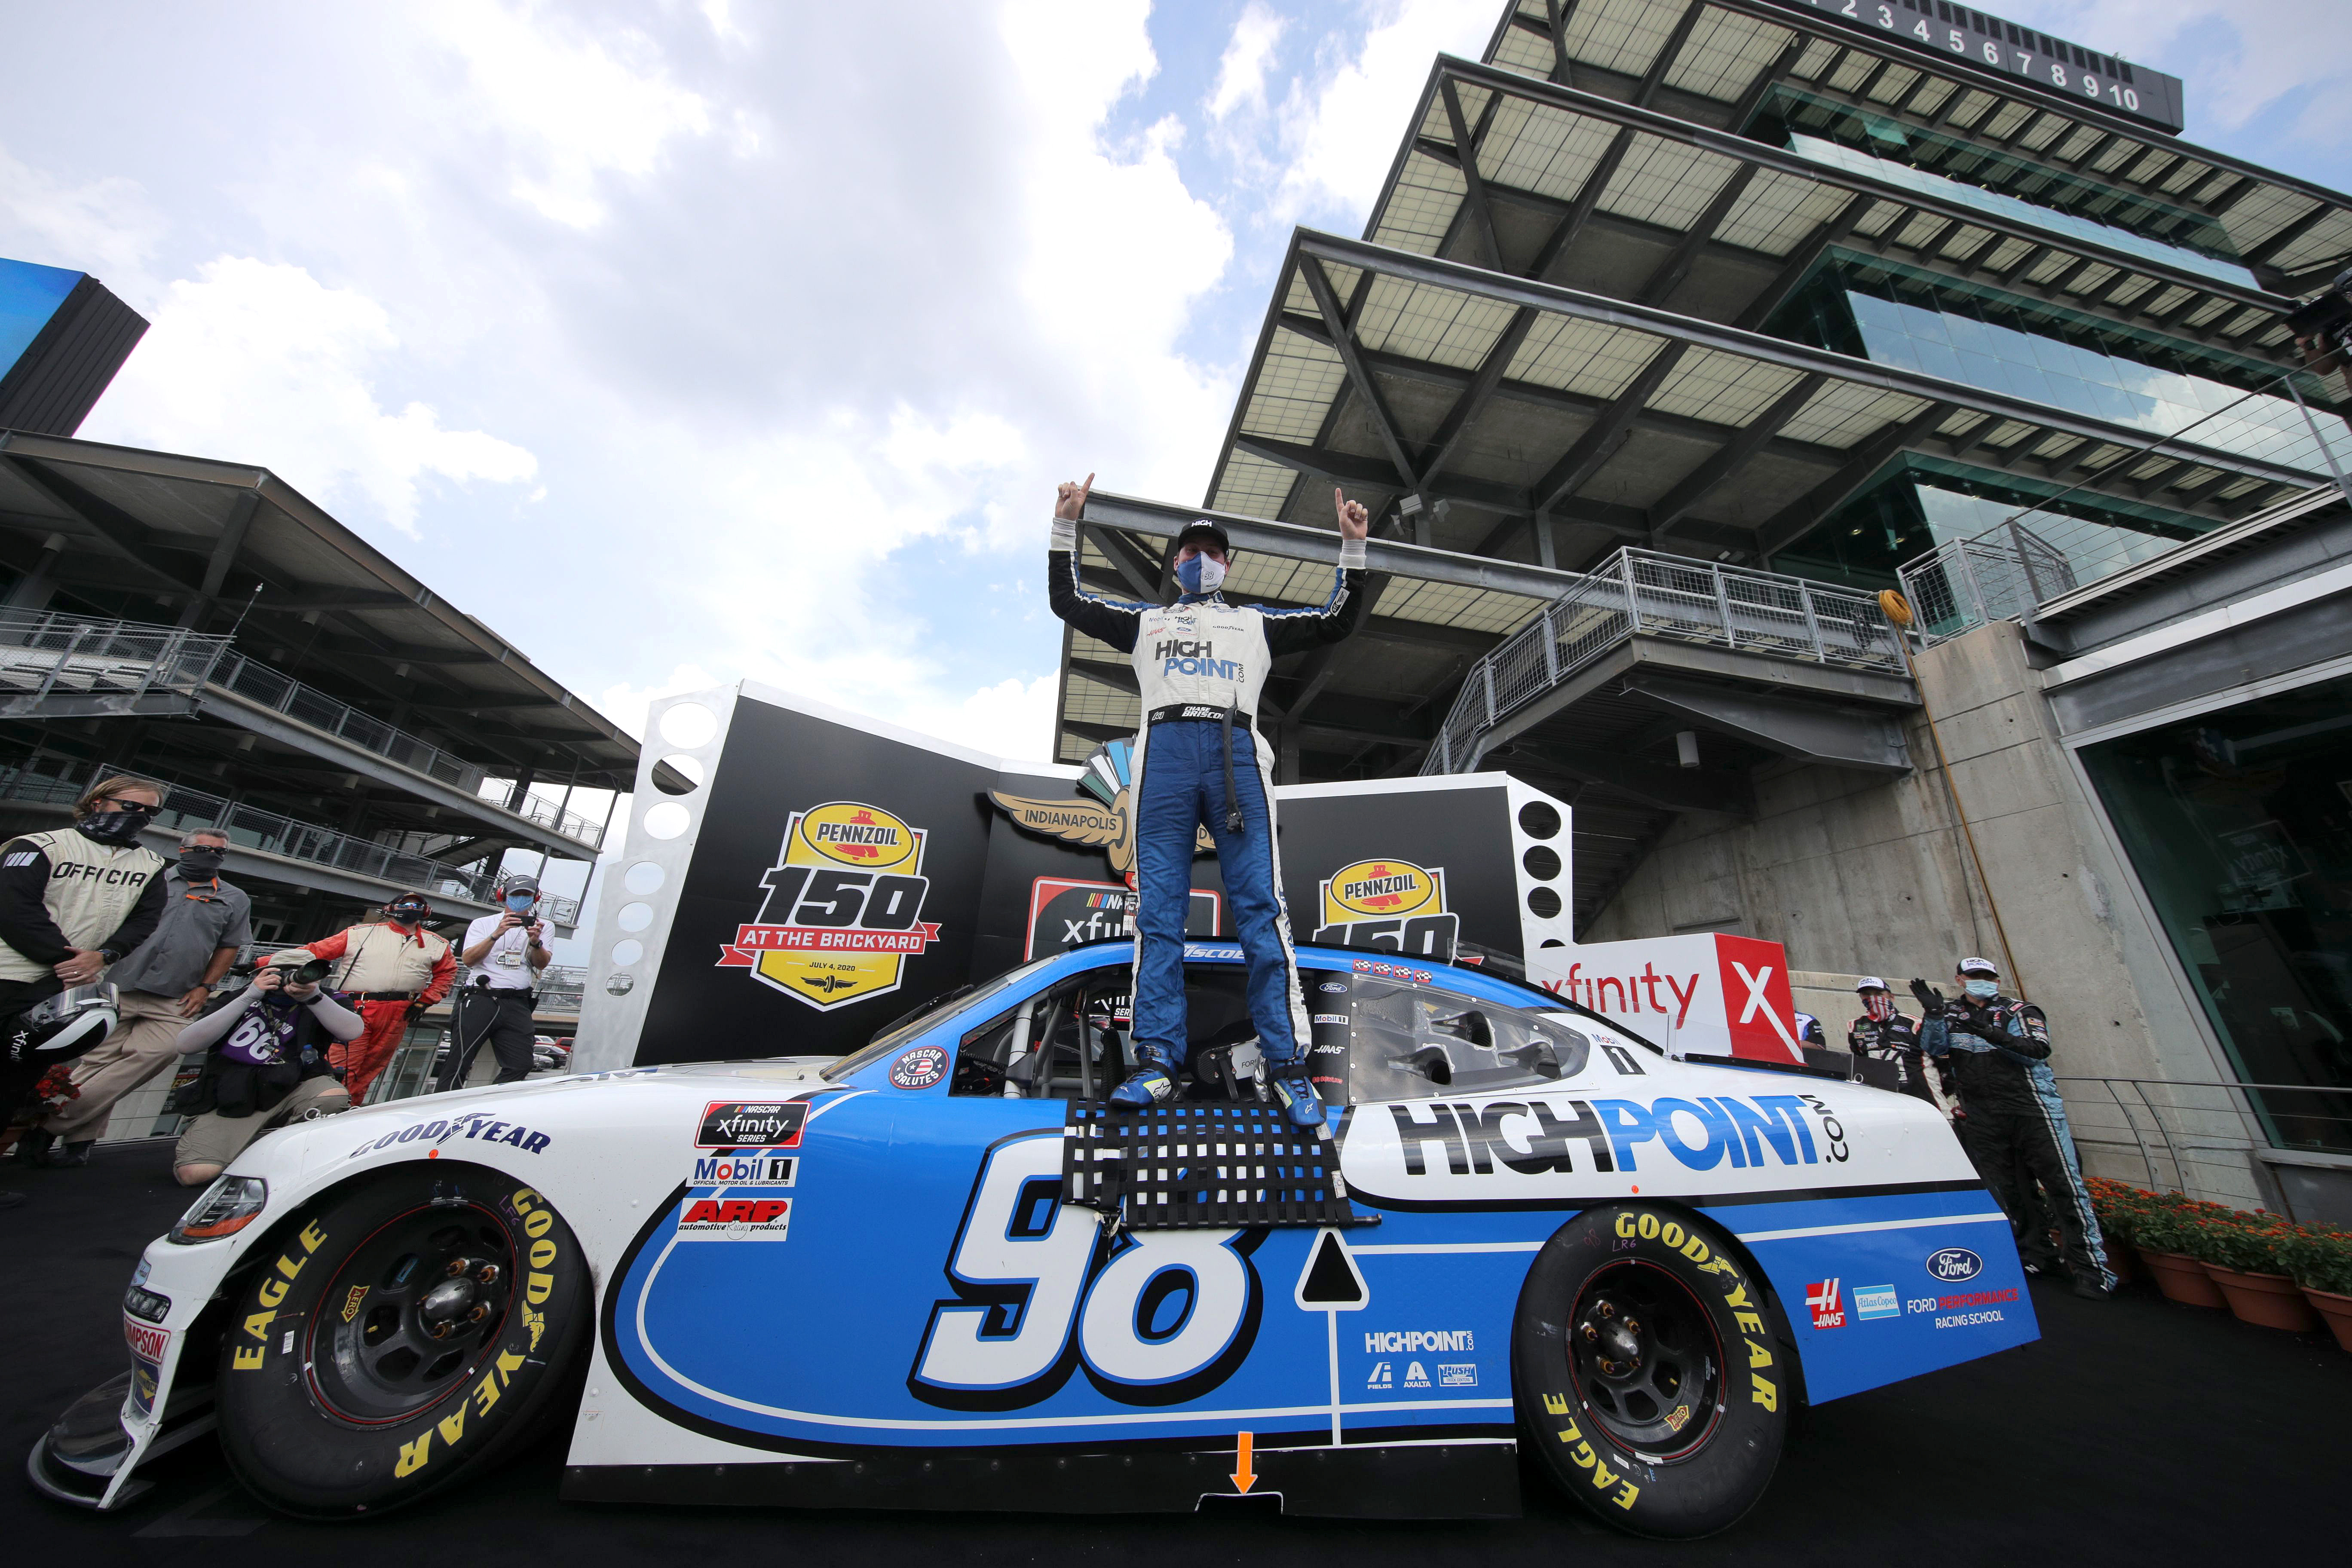 Nascar Xfinity Series Pennzoil 150 At The Brickyard